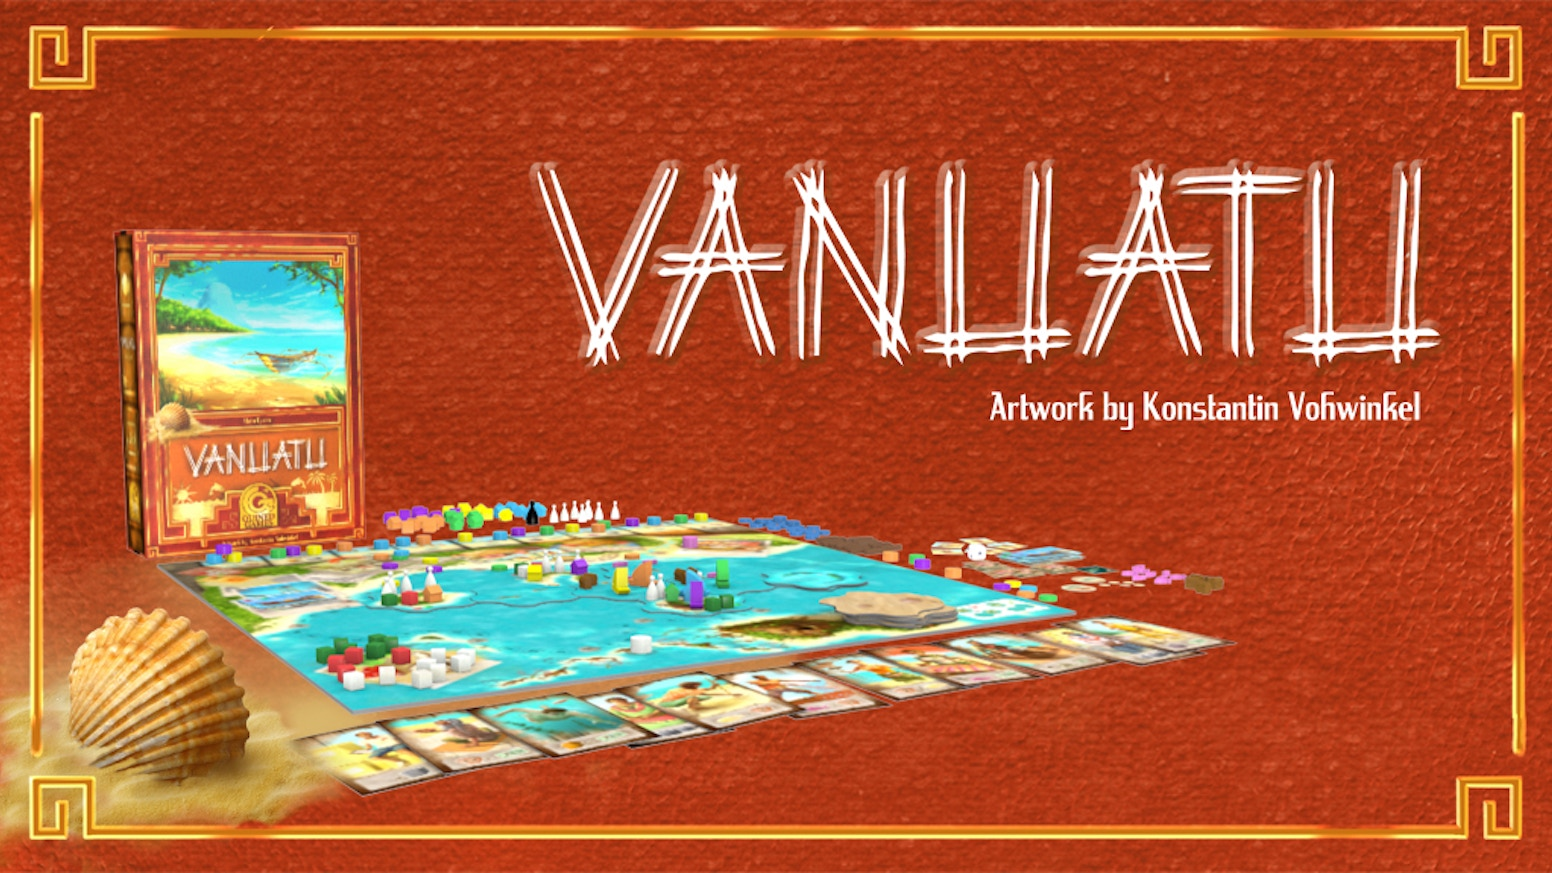 Let's bring the wonderful game of Vanuatu back to life with polished artwork and added mini-expansions.